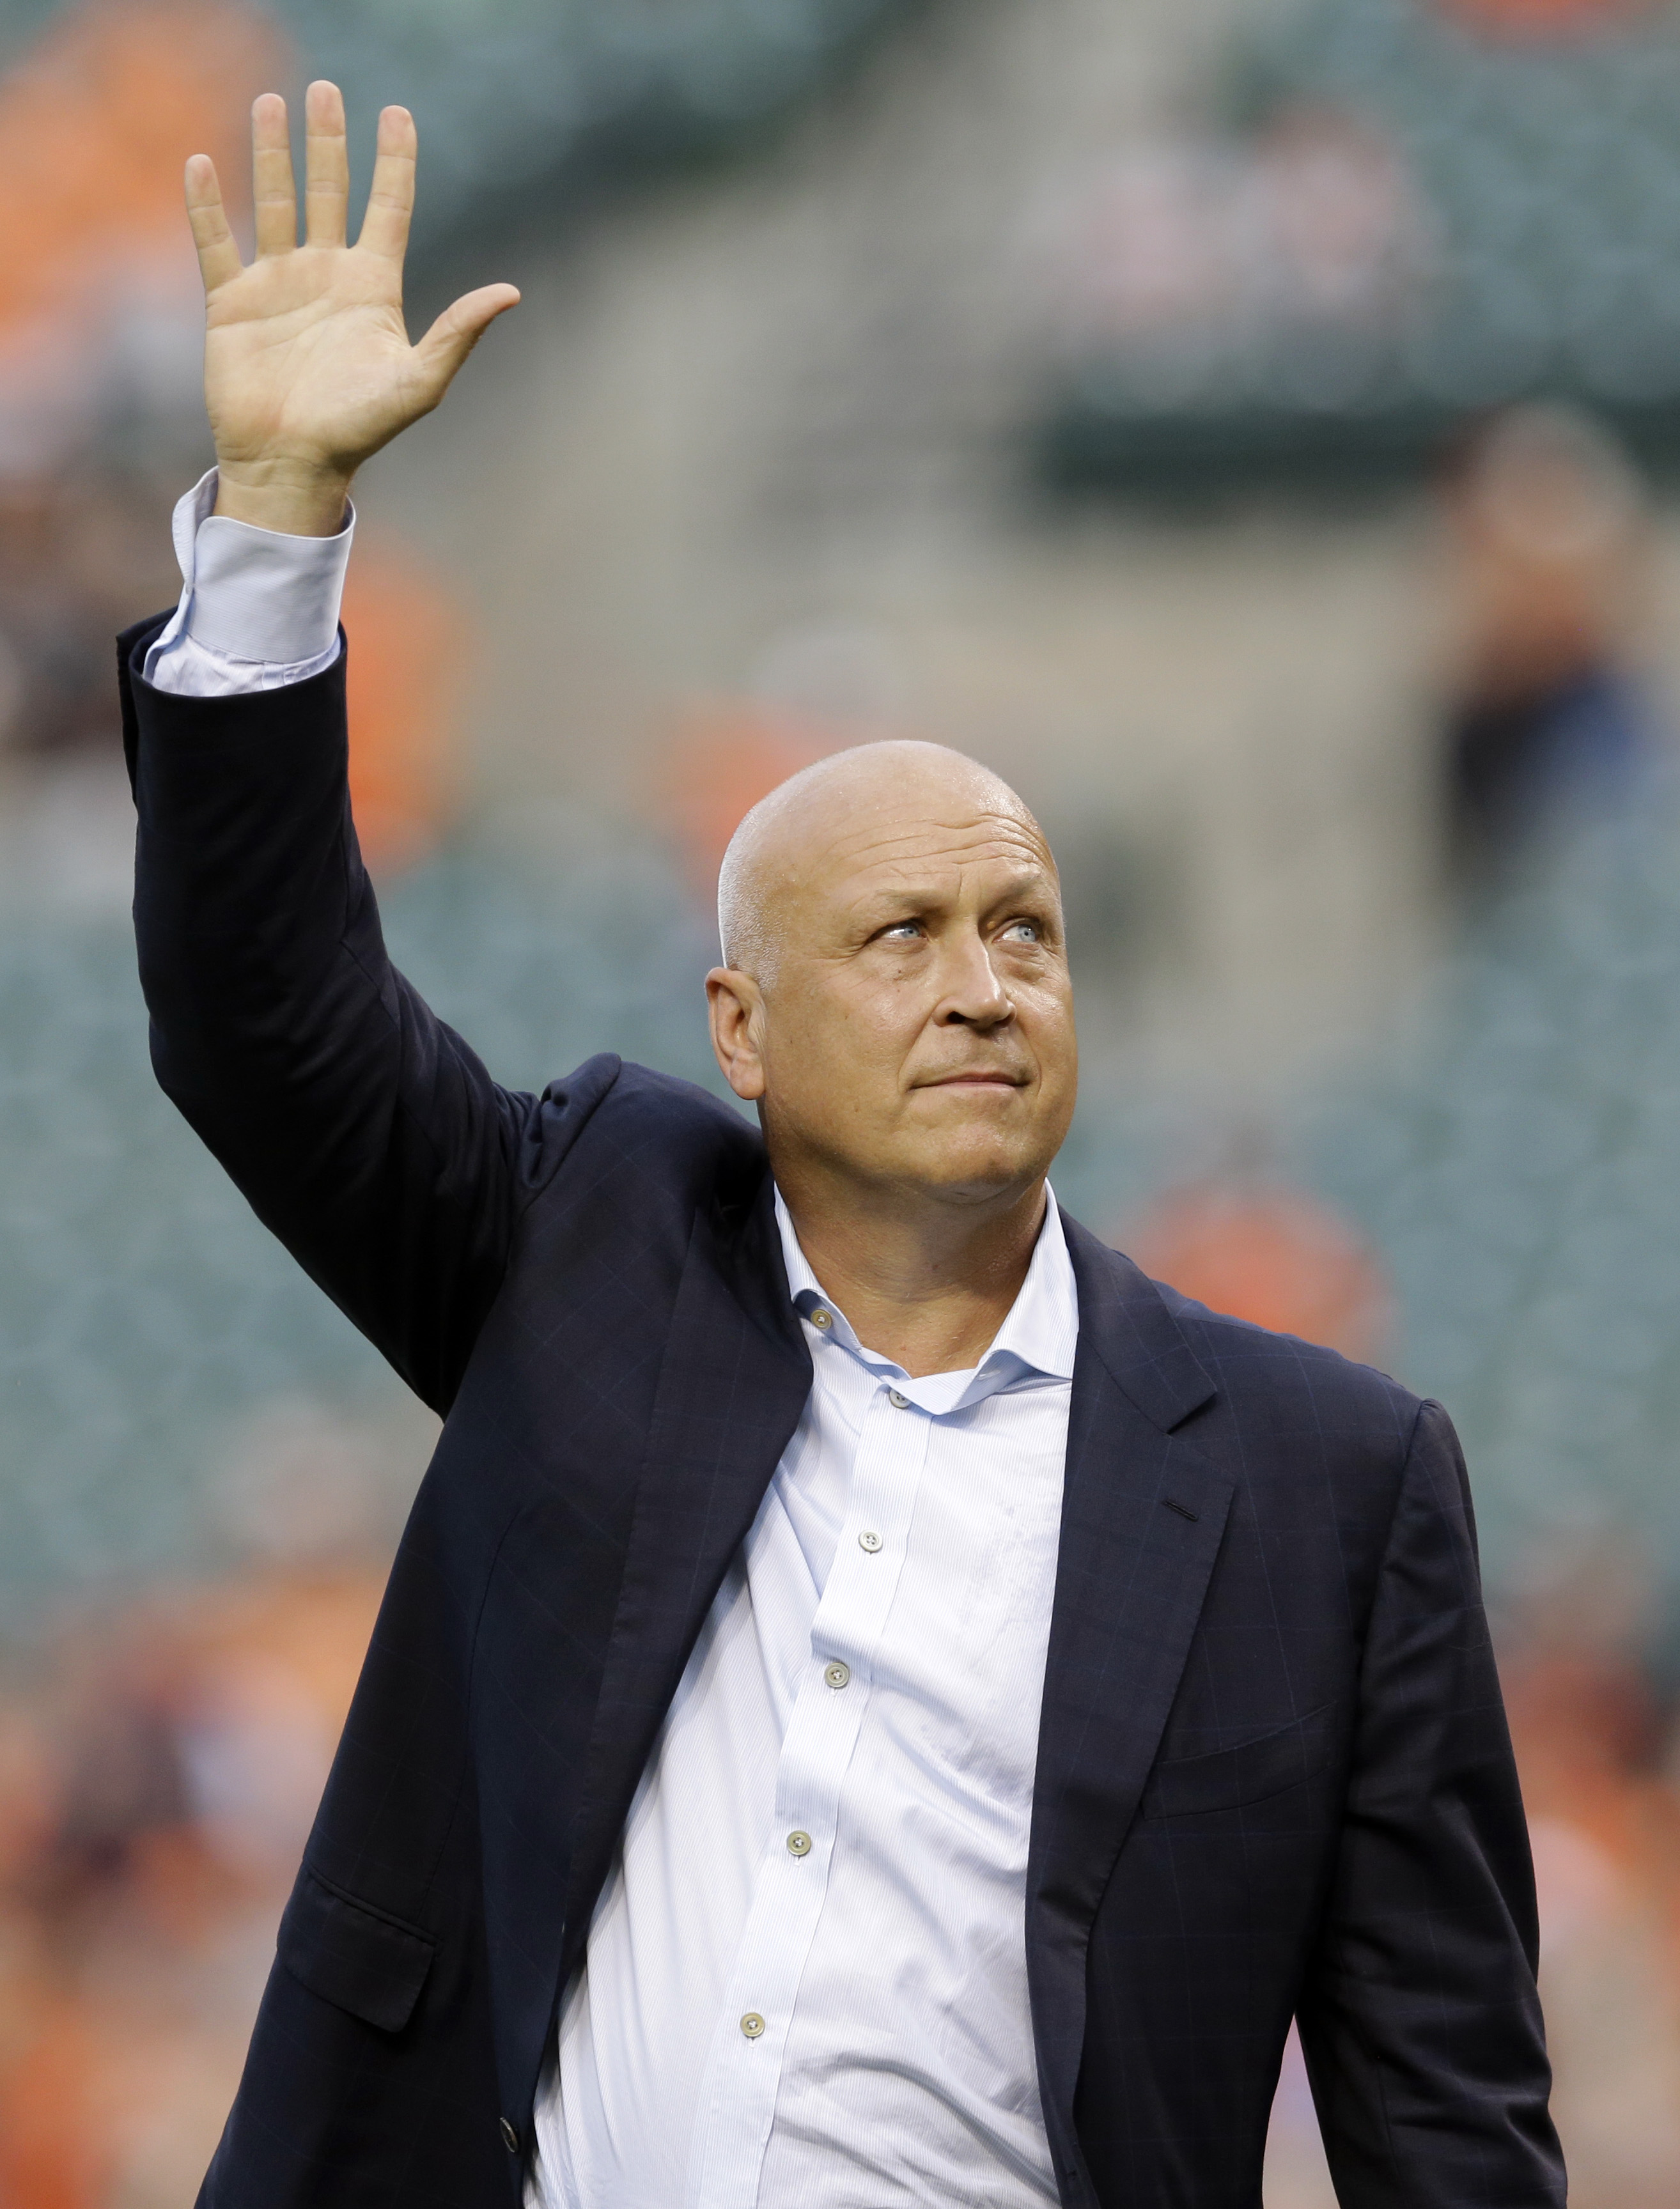 Former Baltimore Oriole Cal Ripken, Jr., acknowledges fans before throwing out the ceremonial first pitch to mark the twentieth anniversary of his streak of 2,131 straight games before a baseball game between the Orioles and the Tampa Bay Rays, Tuesday, S